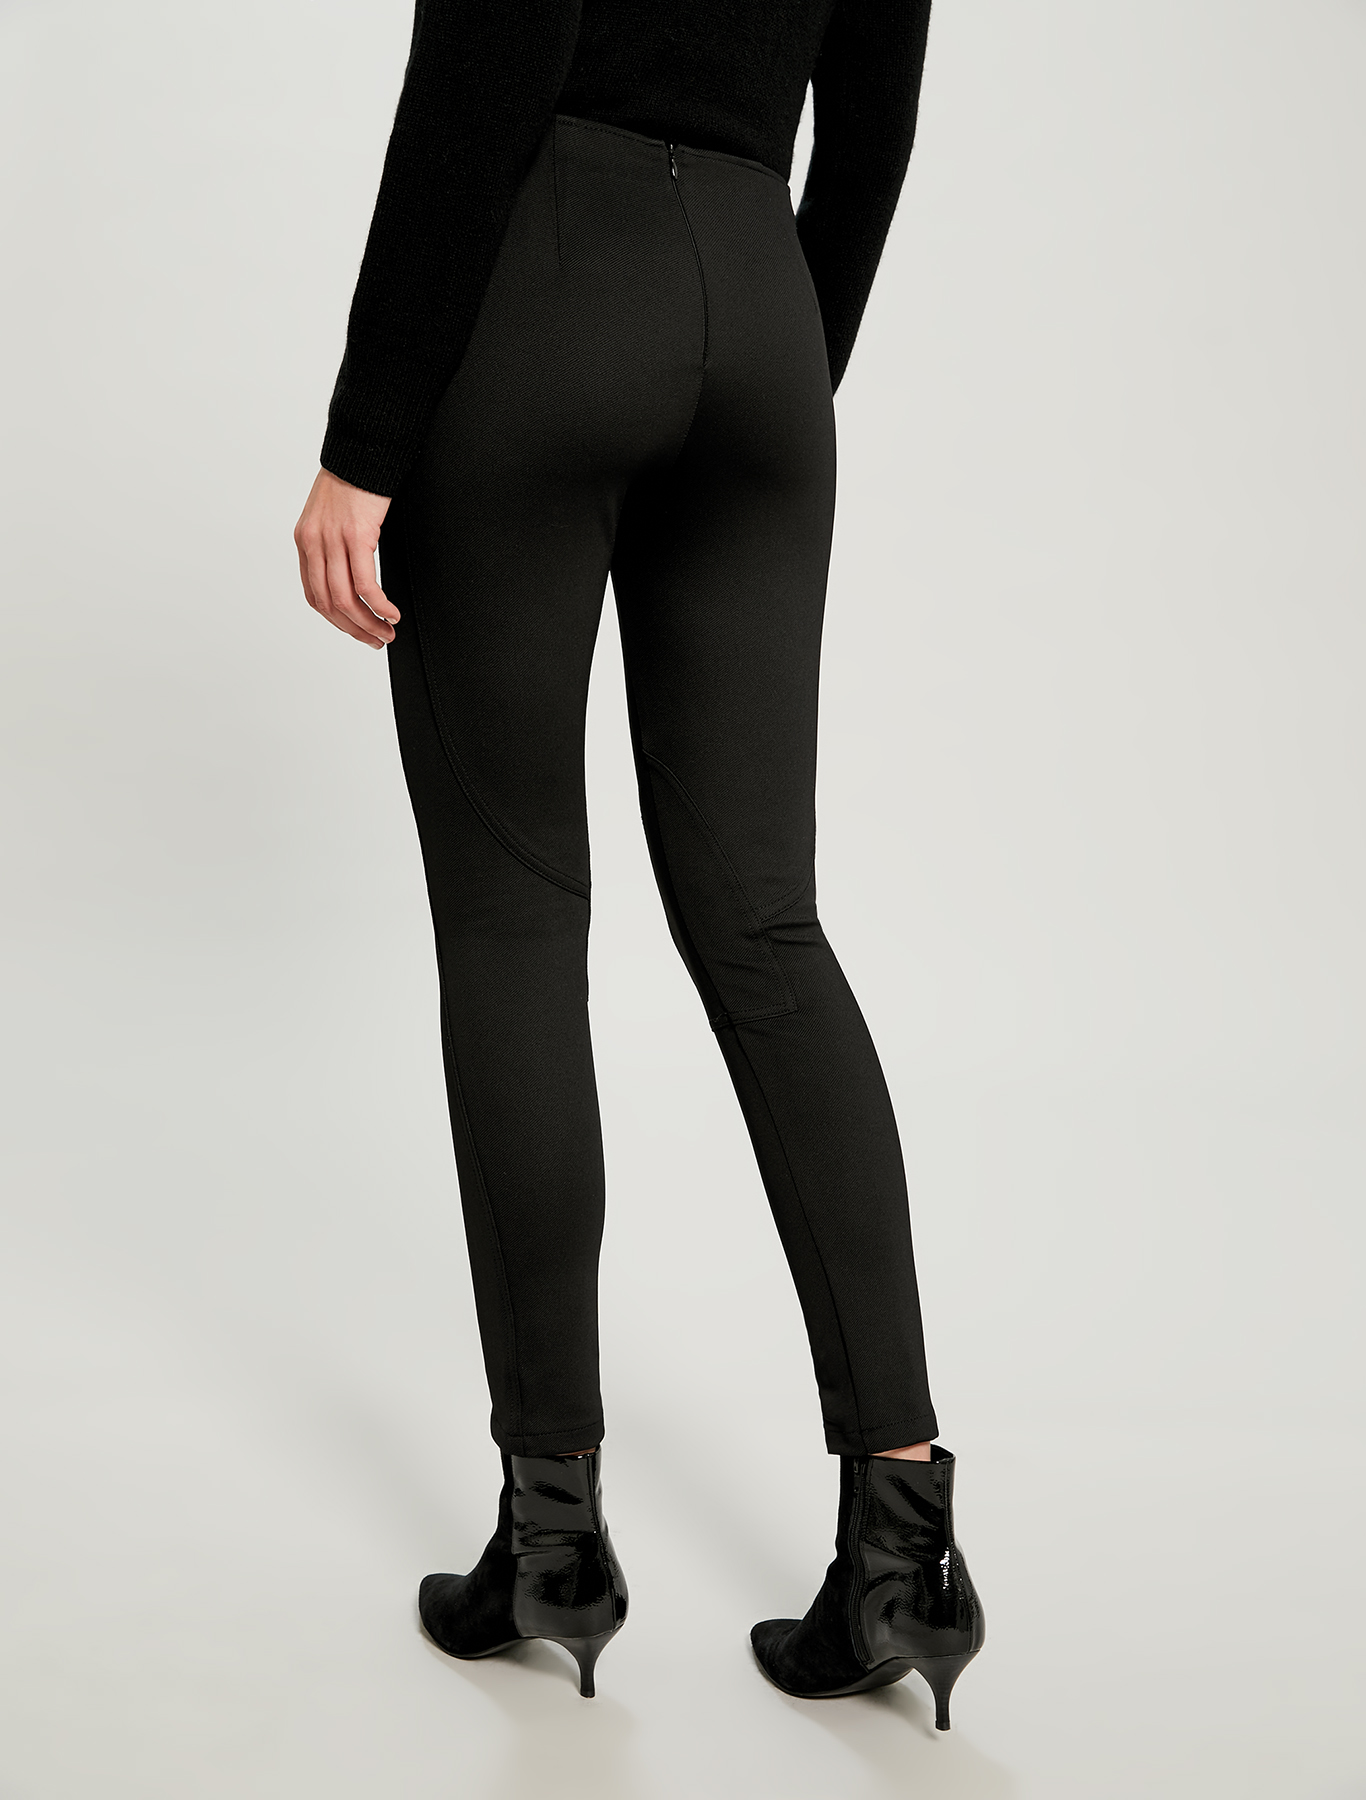 Skinny fit riding trousers - black - pennyblack